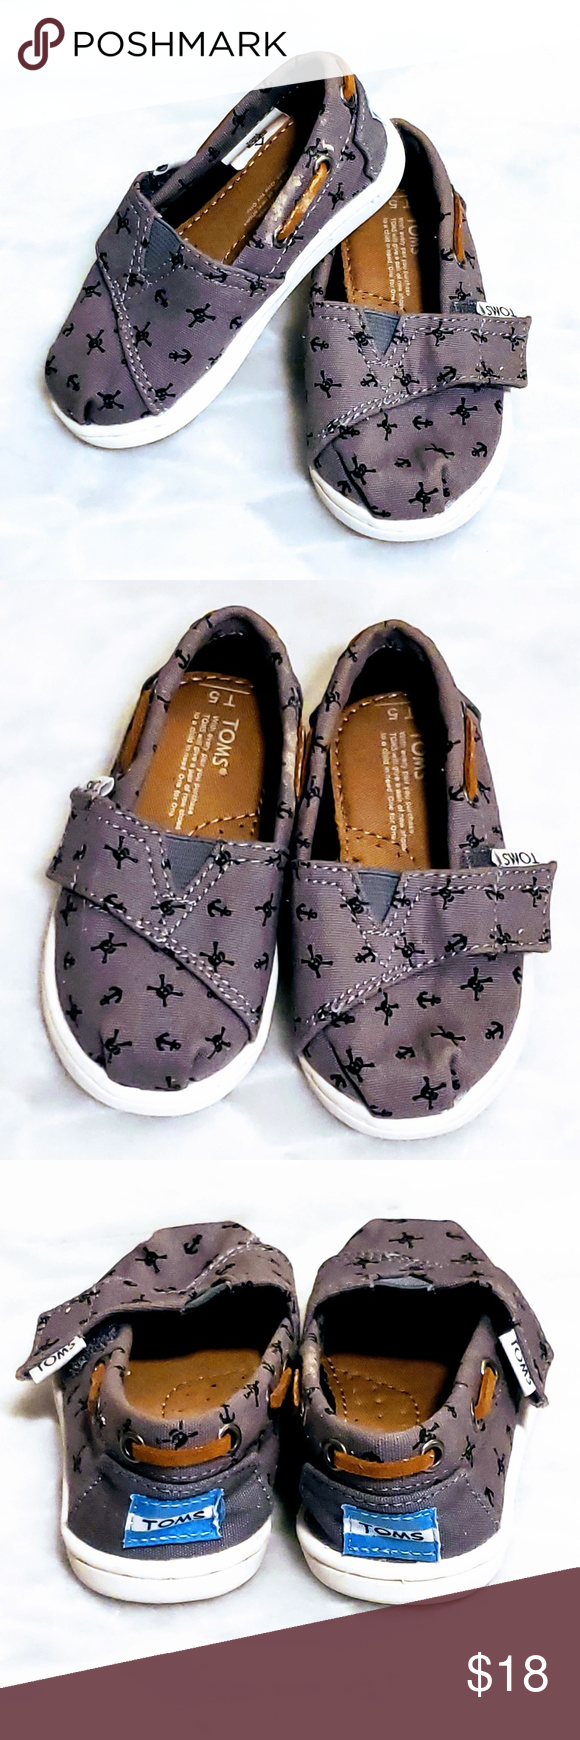 530b330302c 🆕TOMS Tiny Toms size T5 crossbones shoes⚓ TOMS scull and crossbones anchor